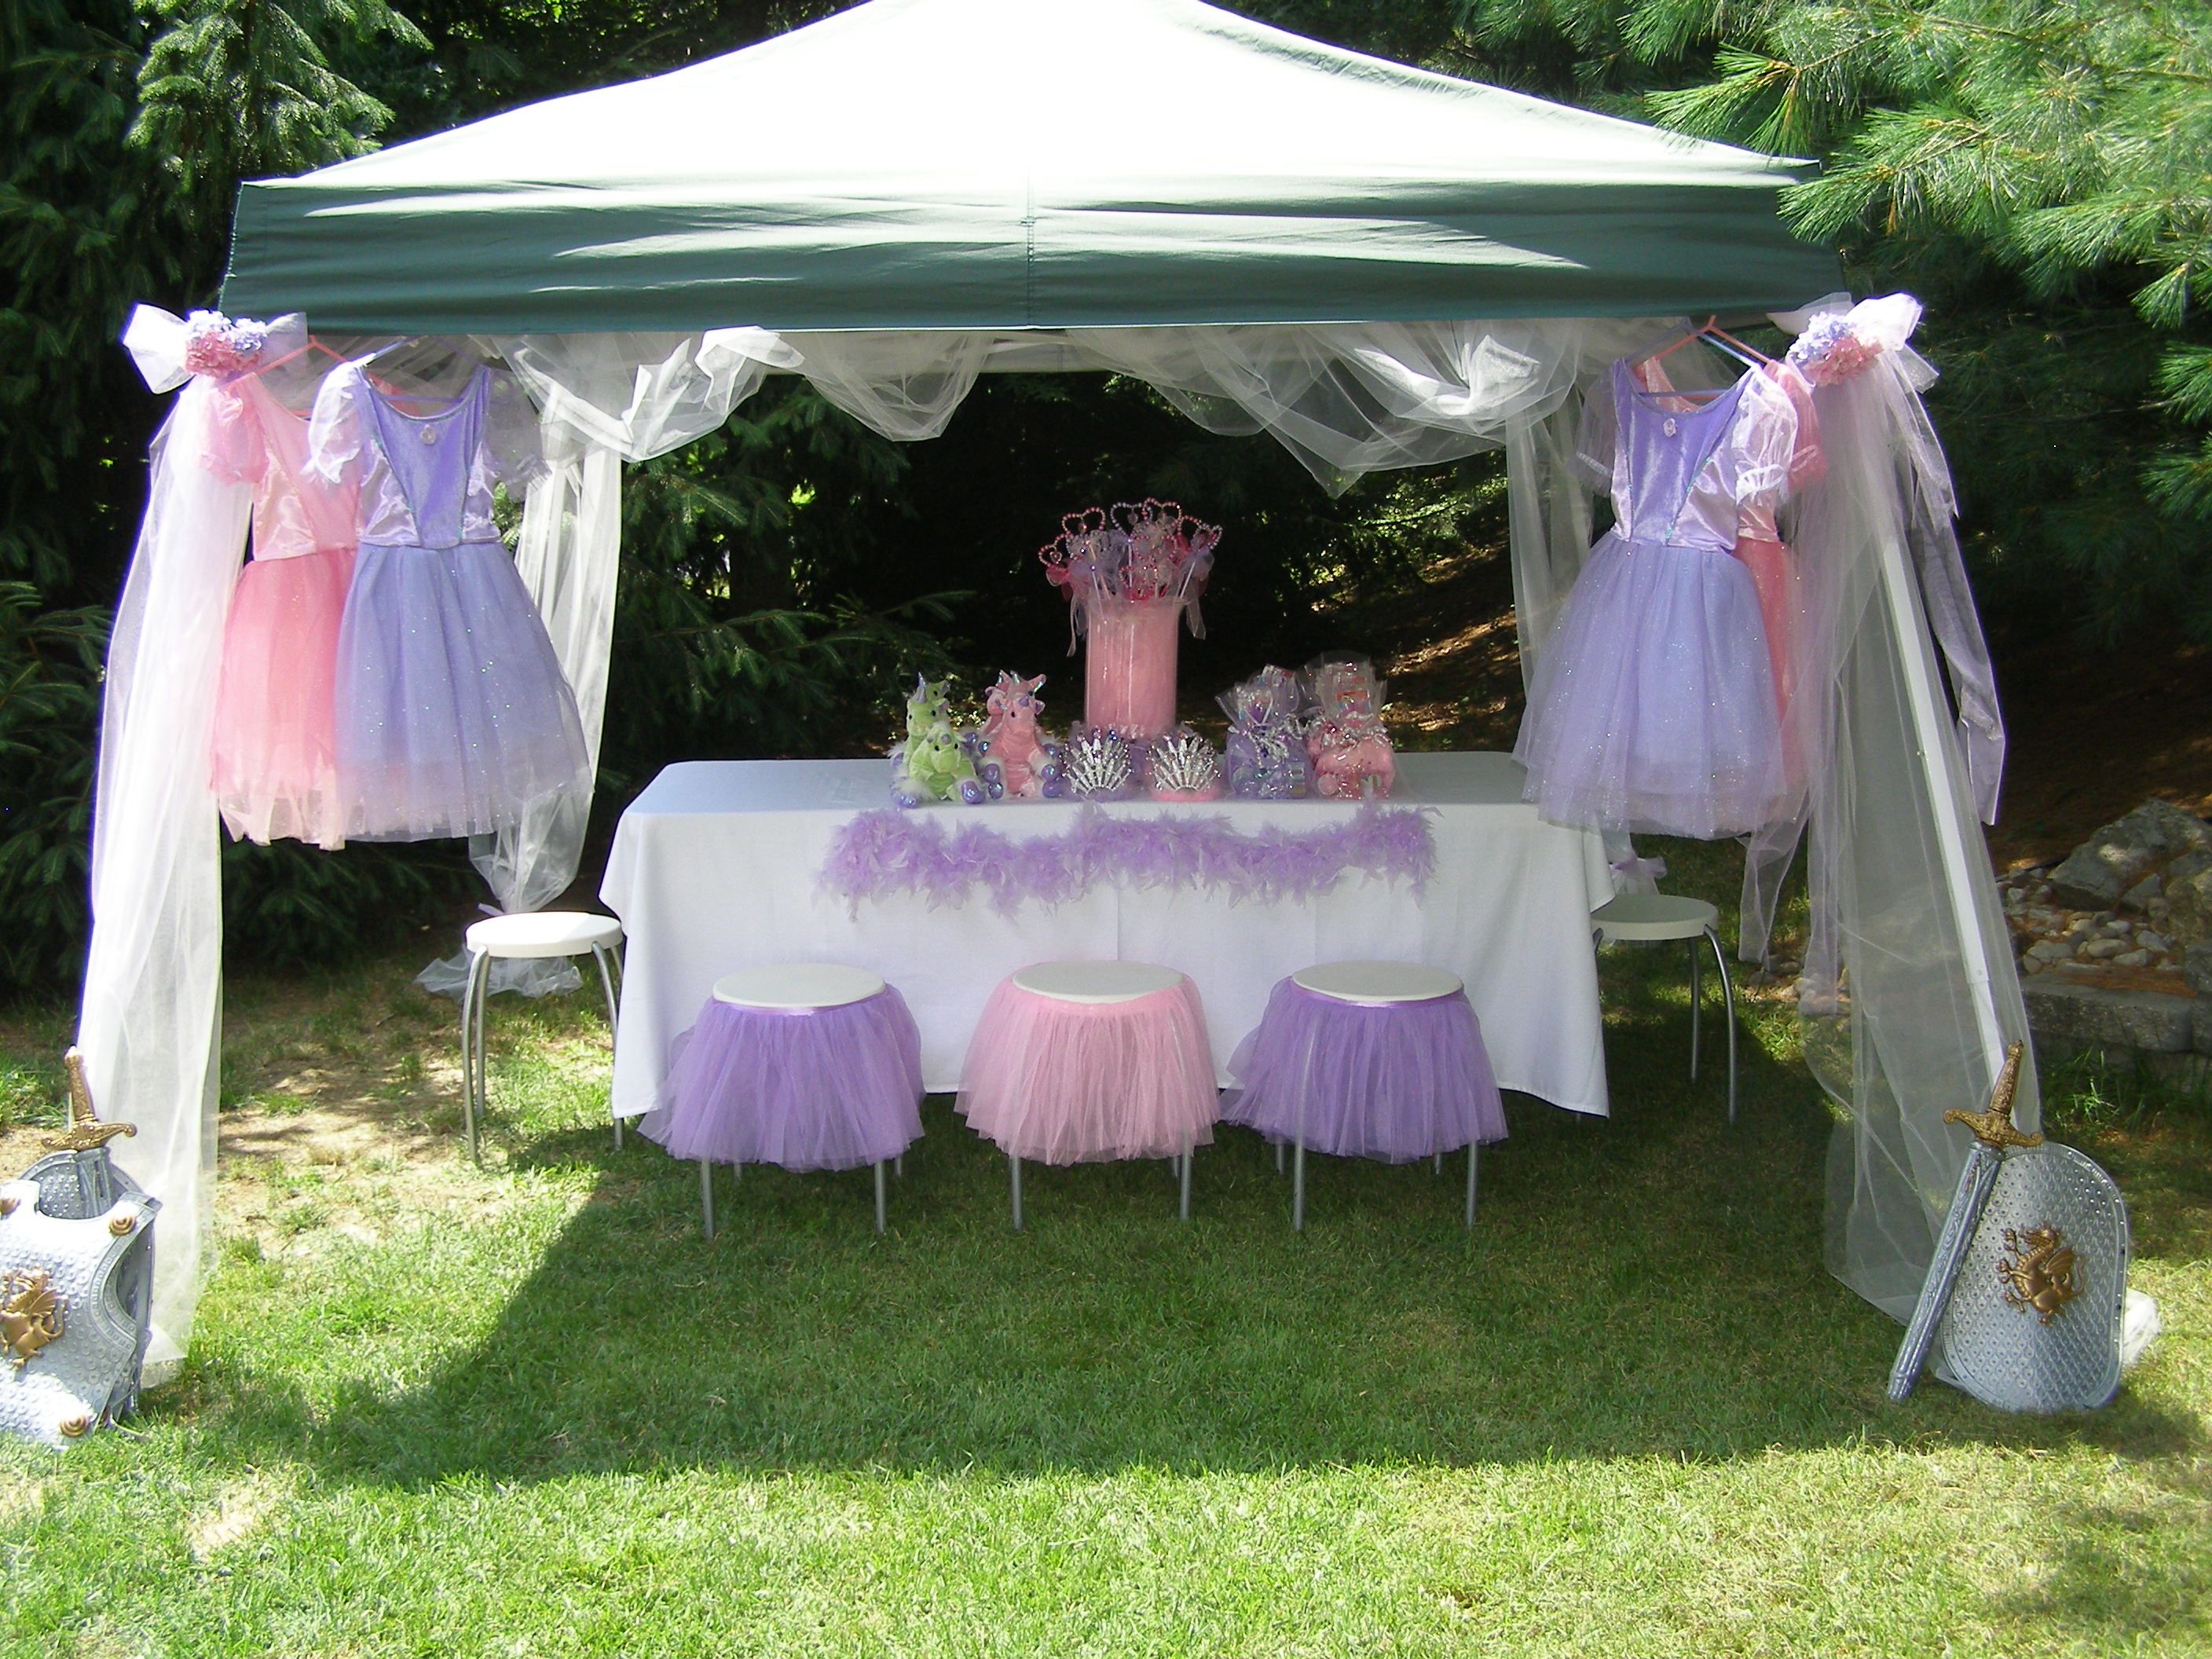 Ez Up Gazebos Can Be Used So Easily For An Outdoor Princess Party Tulle Can Dress U Princess Theme Birthday Party Princess Party Supplies Princess Sofia Party